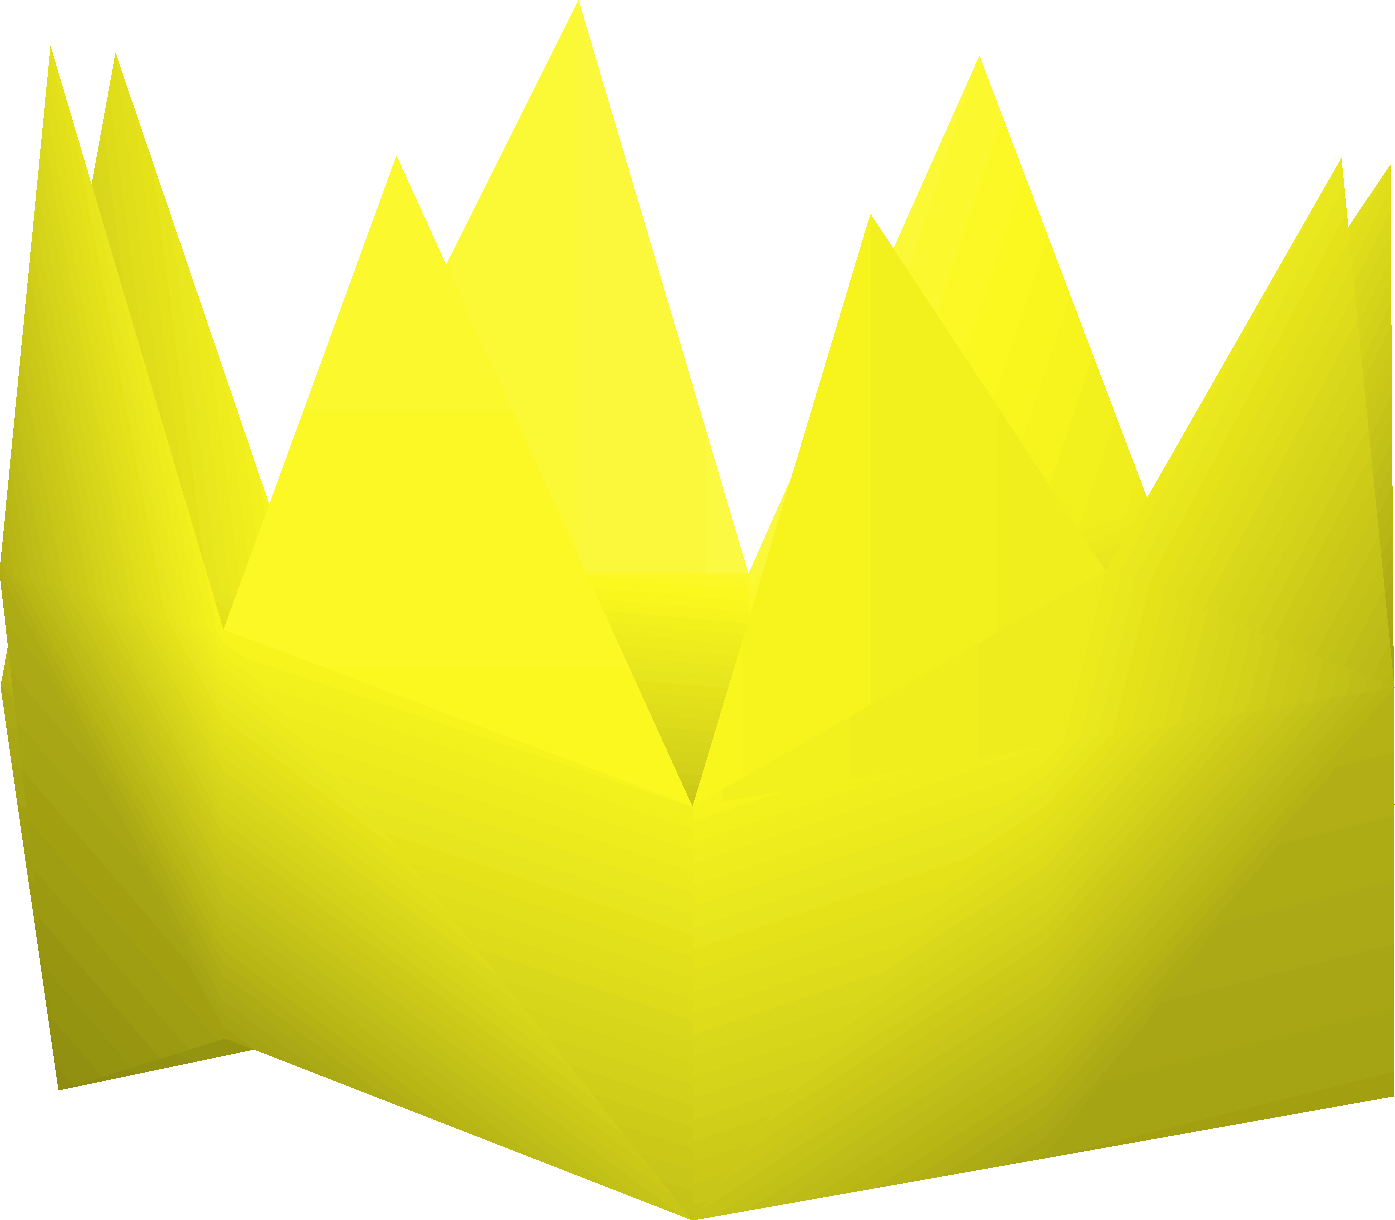 Yellow Partyhat Osrs Wiki